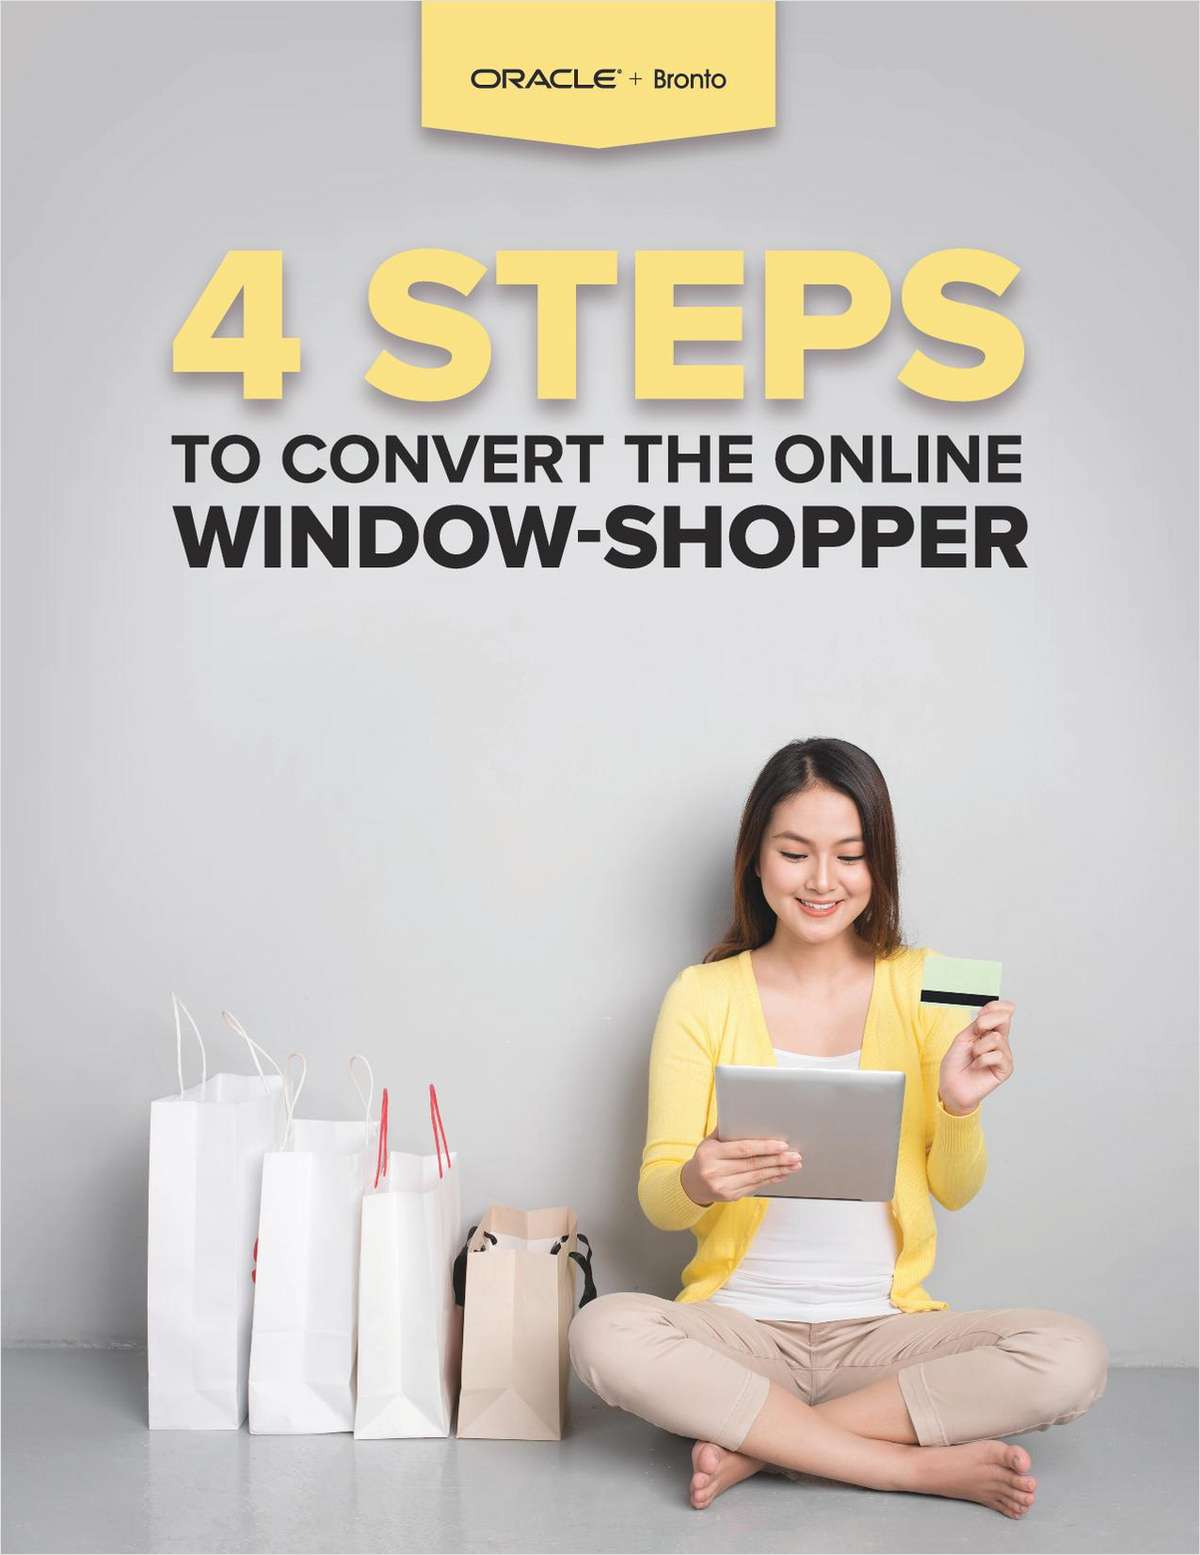 4 Steps to Convert the Online Window-Shopper